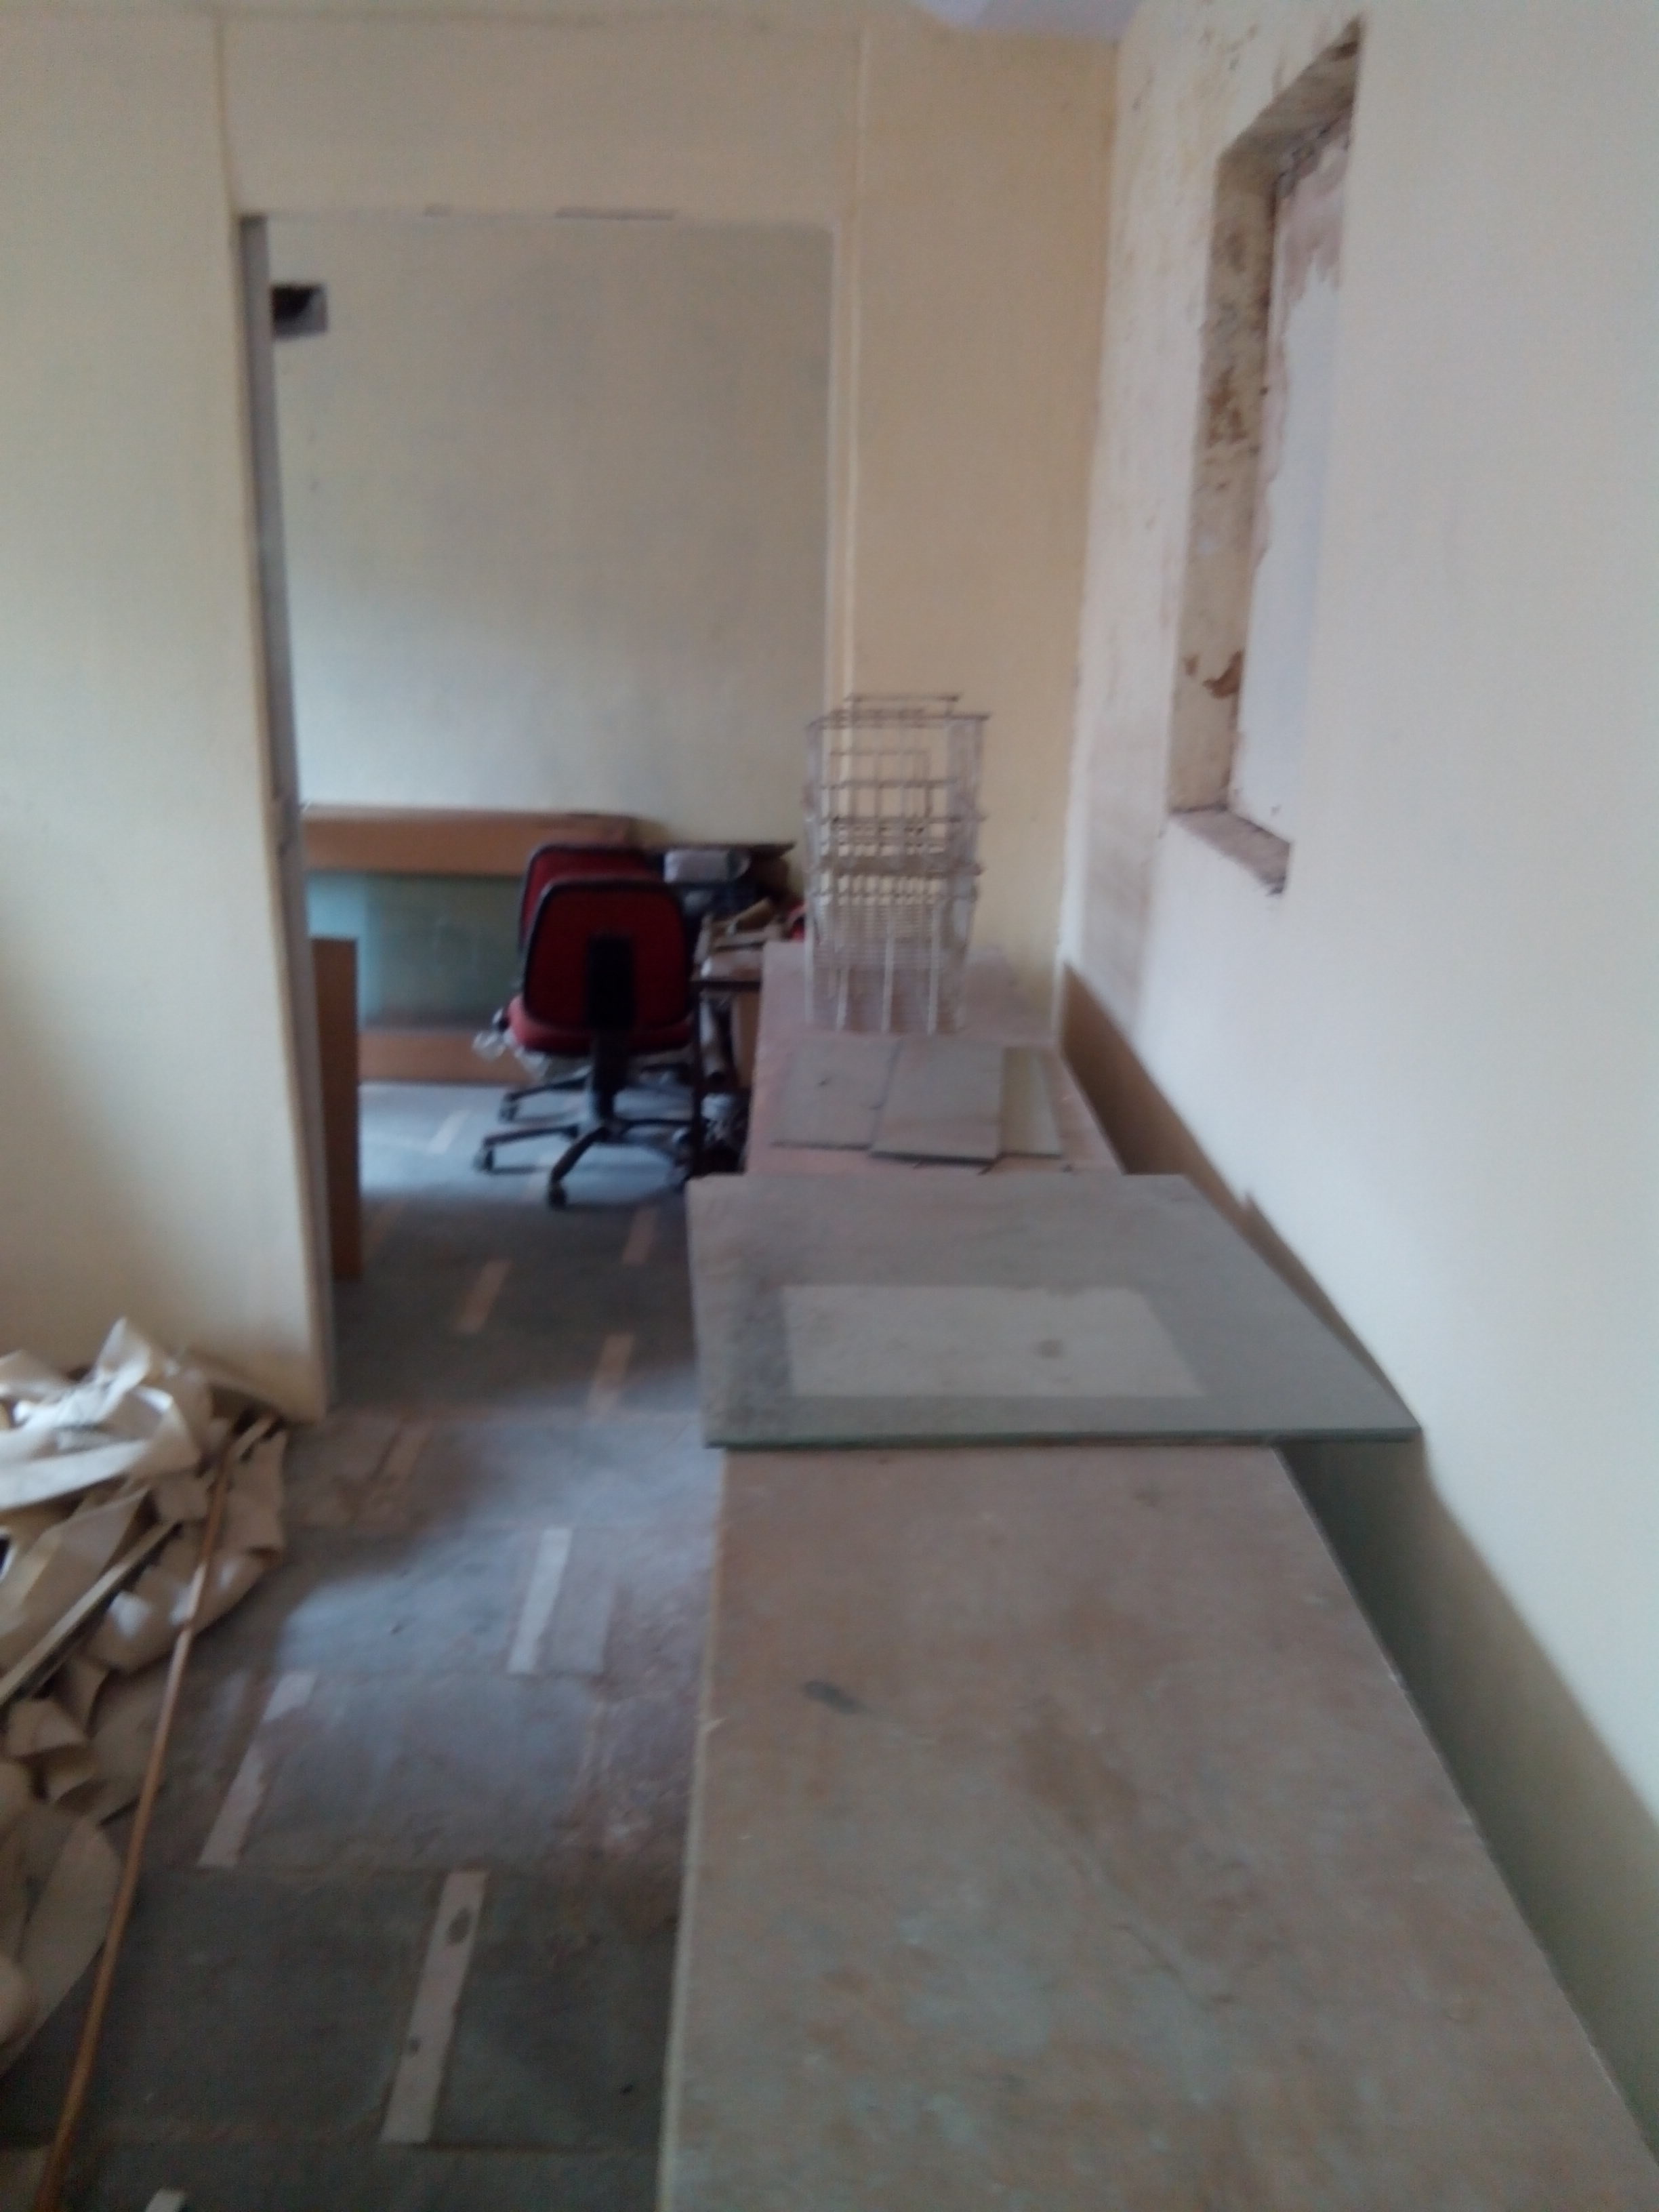 Commercial Office Space for Rent in stunning tower room no 101, Kalyan-West, Mumbai